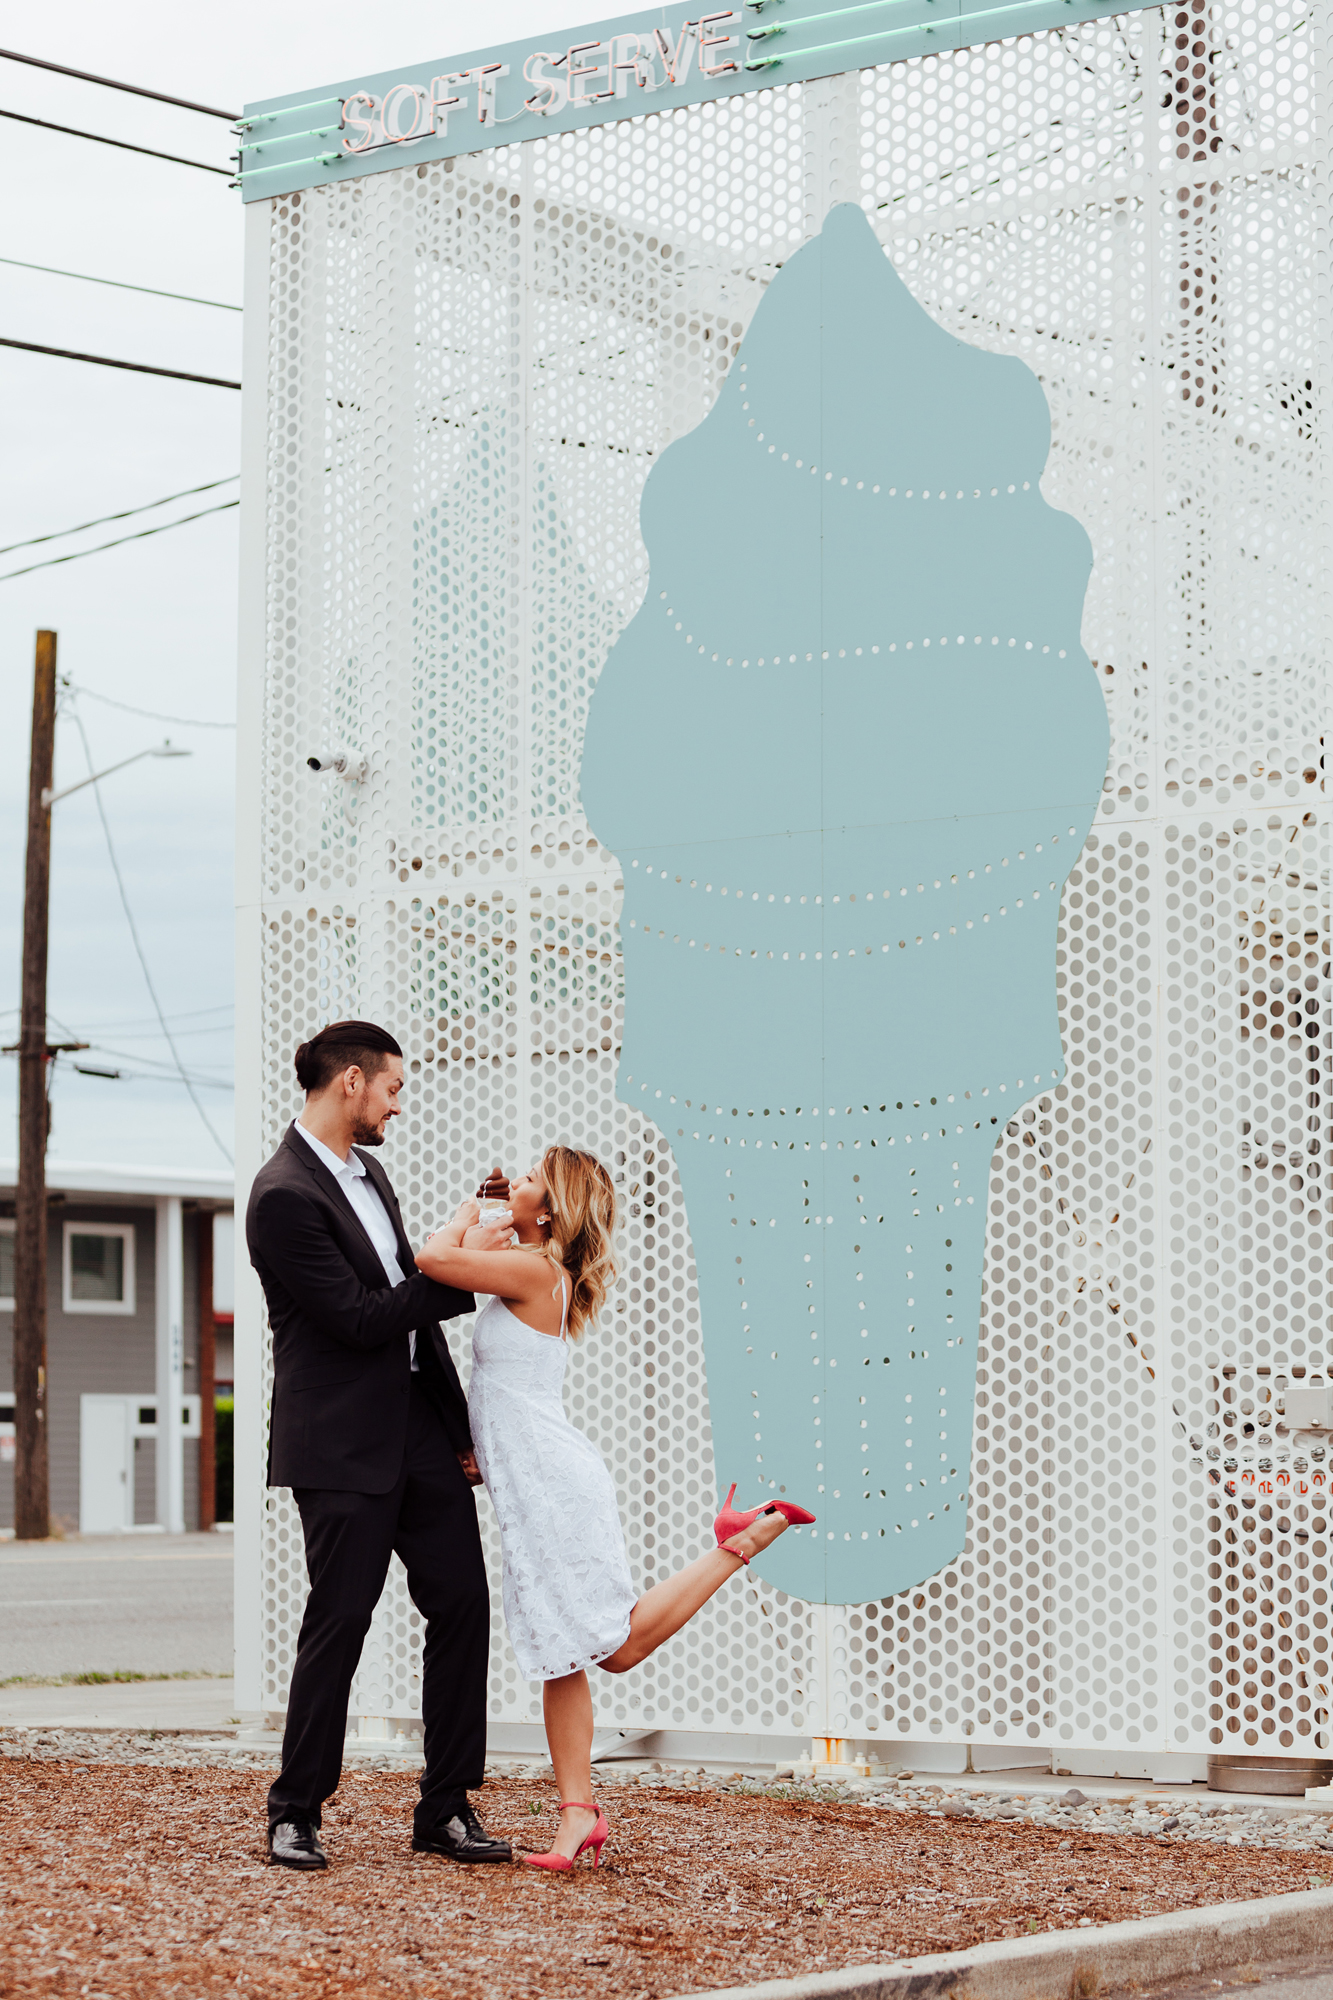 Seattle Rooftop Courthouse Wedding Photos by Krista Welch00017.jpg